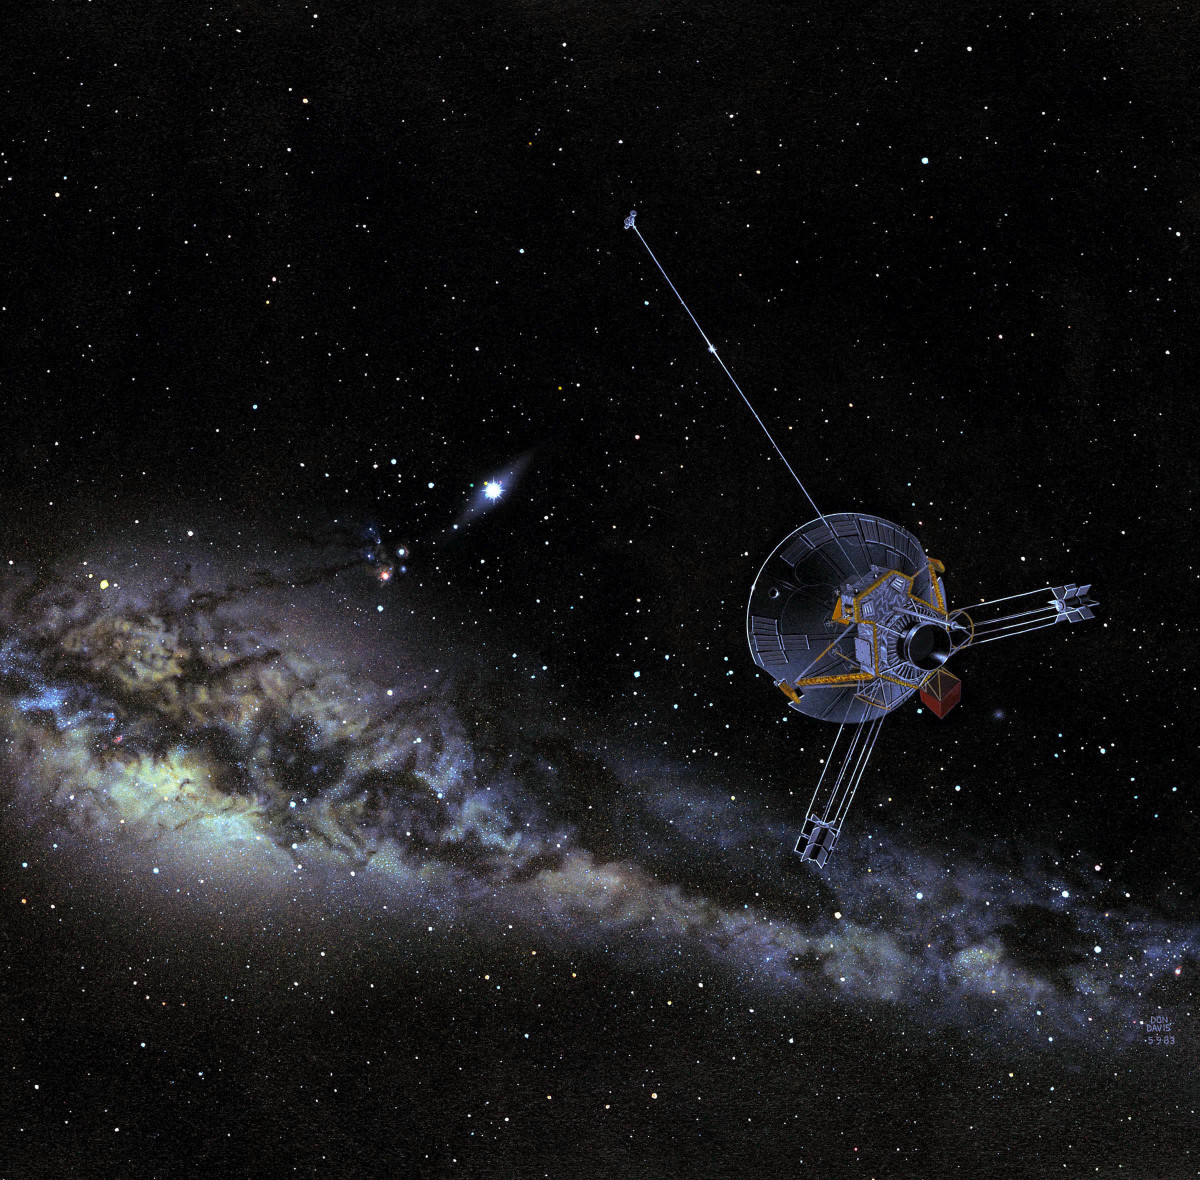 Where Is Pioneer 10 Now?